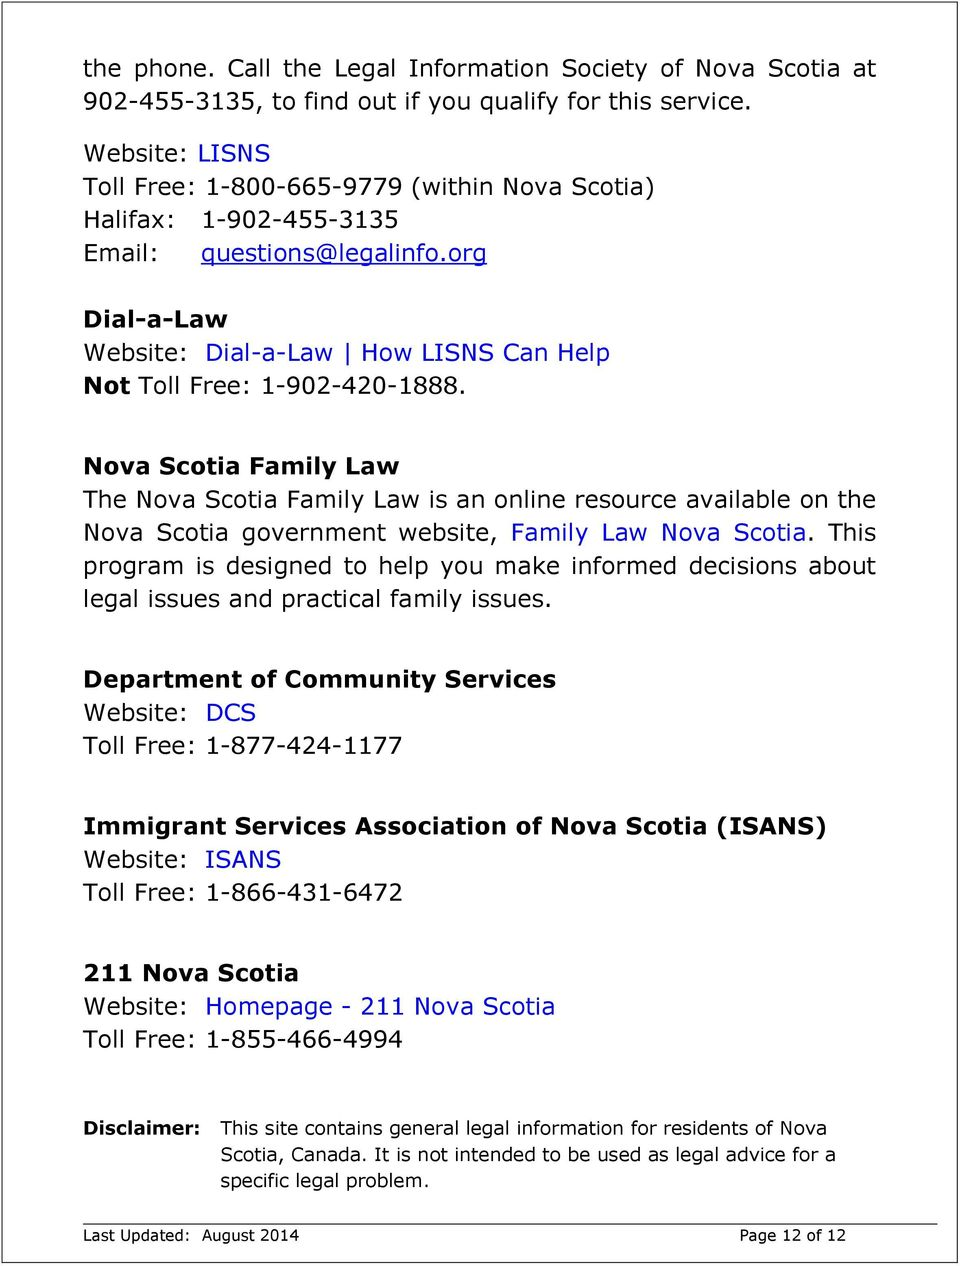 Nova Scotia Family Law The Nova Scotia Family Law is an online resource available on the Nova Scotia government website, Family Law Nova Scotia.